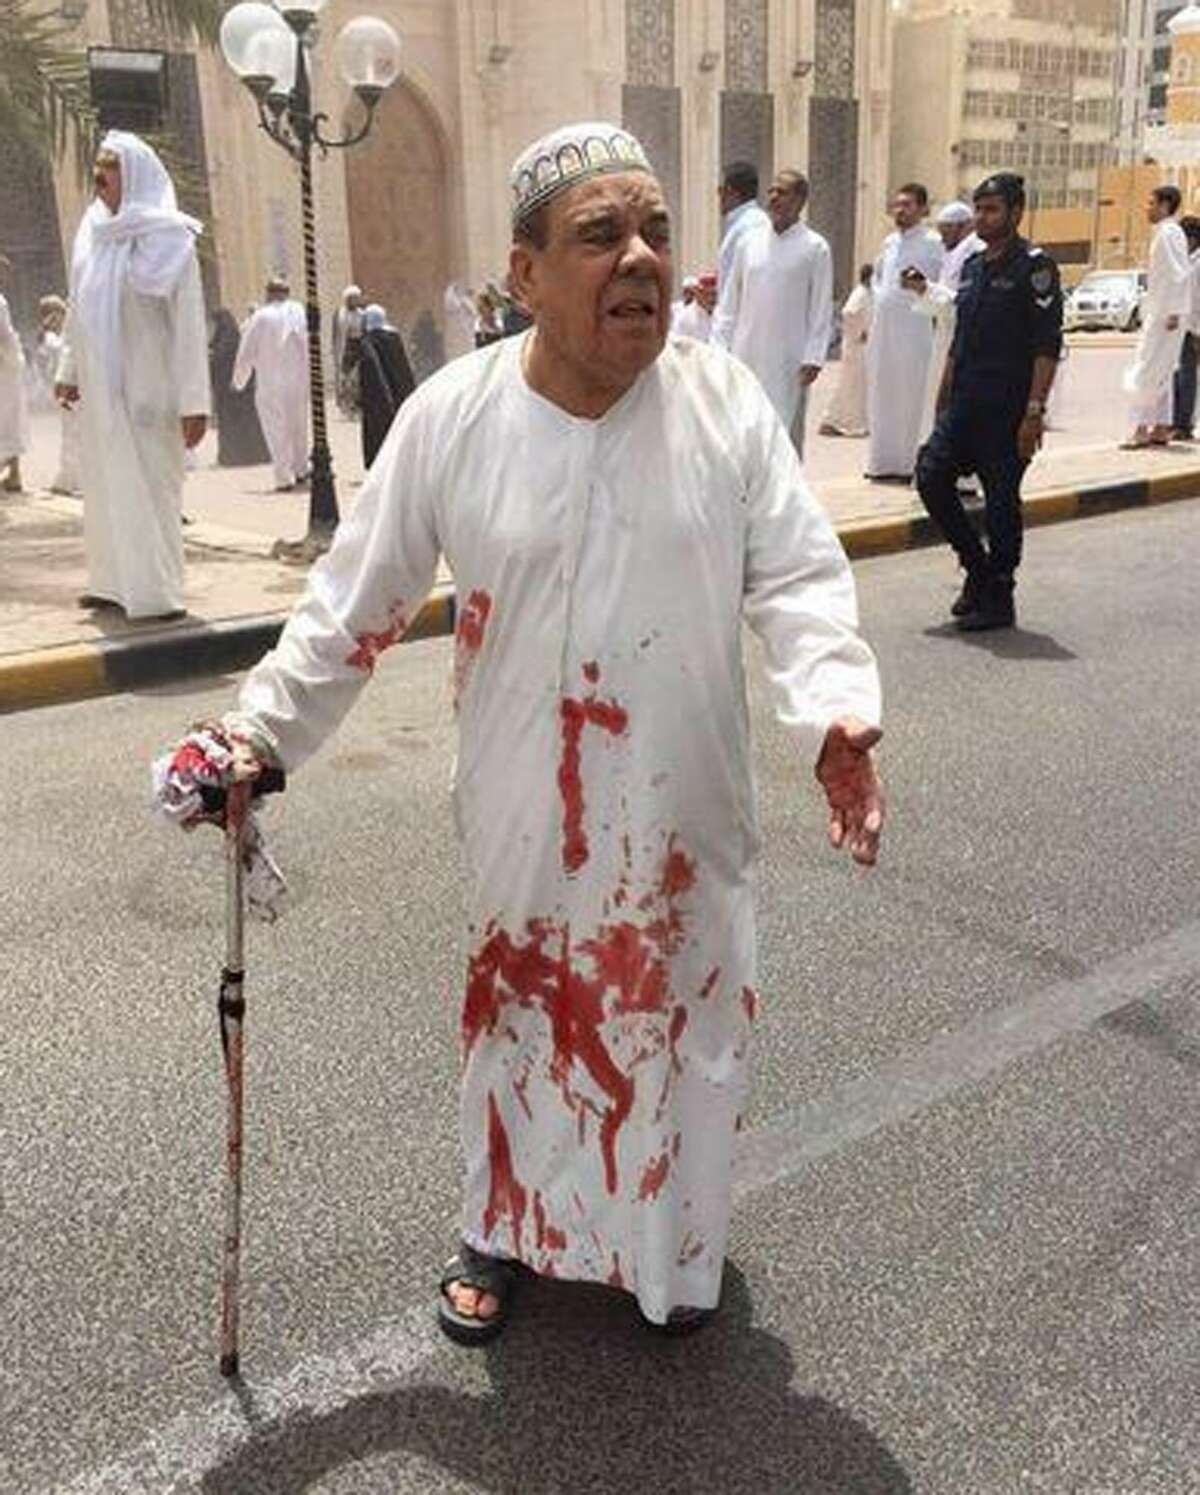 This image provided by Kuwaitna news shows a man in a blood-soaked dishdasha following of a deadly blast at a Shiite mosque in Kuwait City, Friday, June 26, 2015. A posting on a Twitter account known to belong to the Islamic State group claimed that the explosion was work of a suicide bomber wearing an explosive belt. (Kuwaitna News via AP)